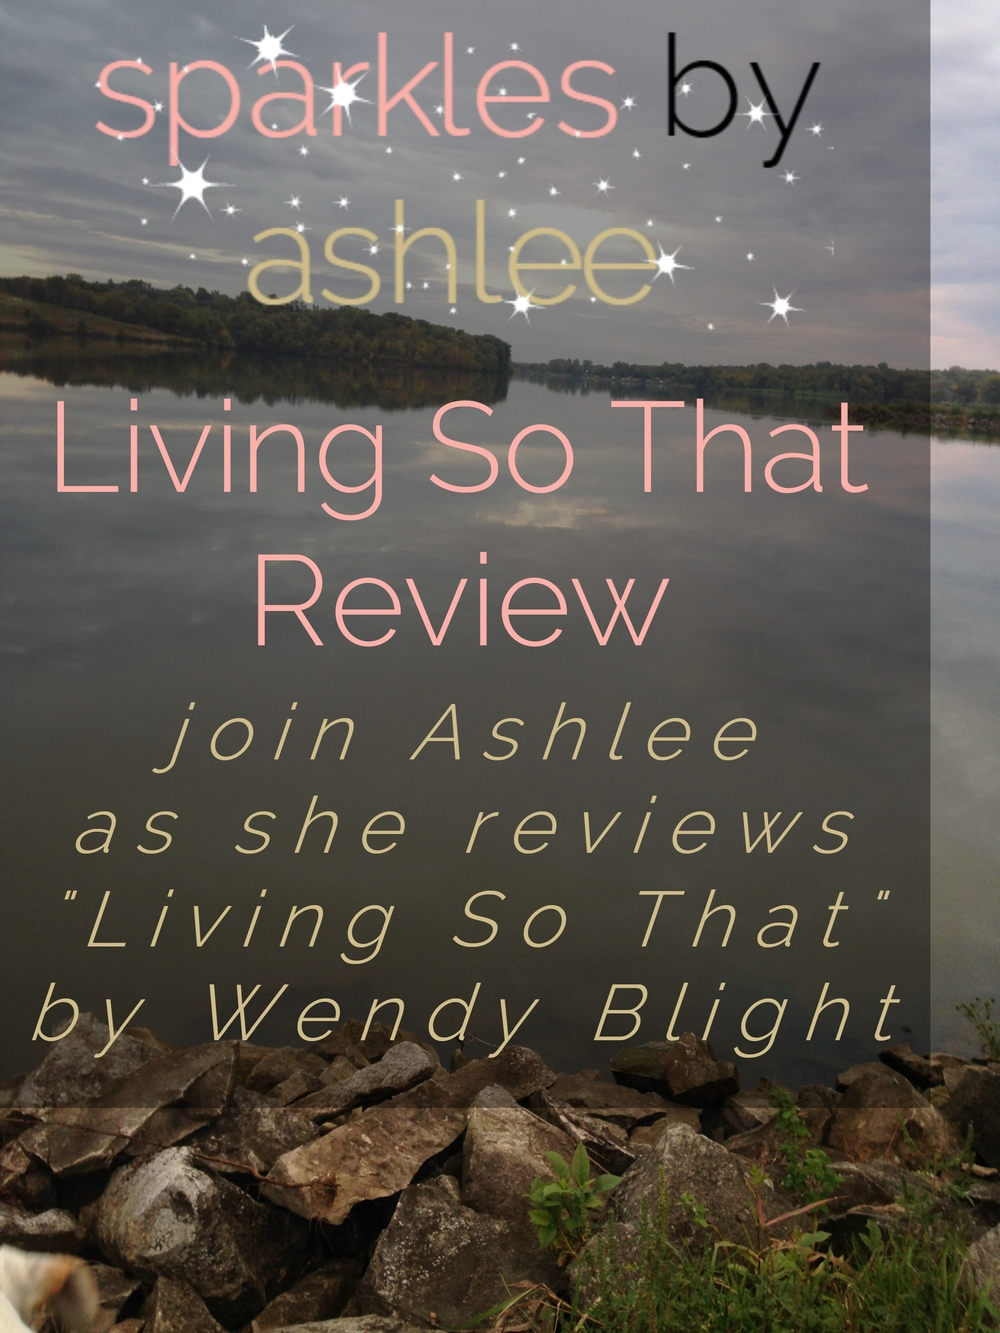 Living-So-That-Review-Sparkles-by-Ashlee.jpg